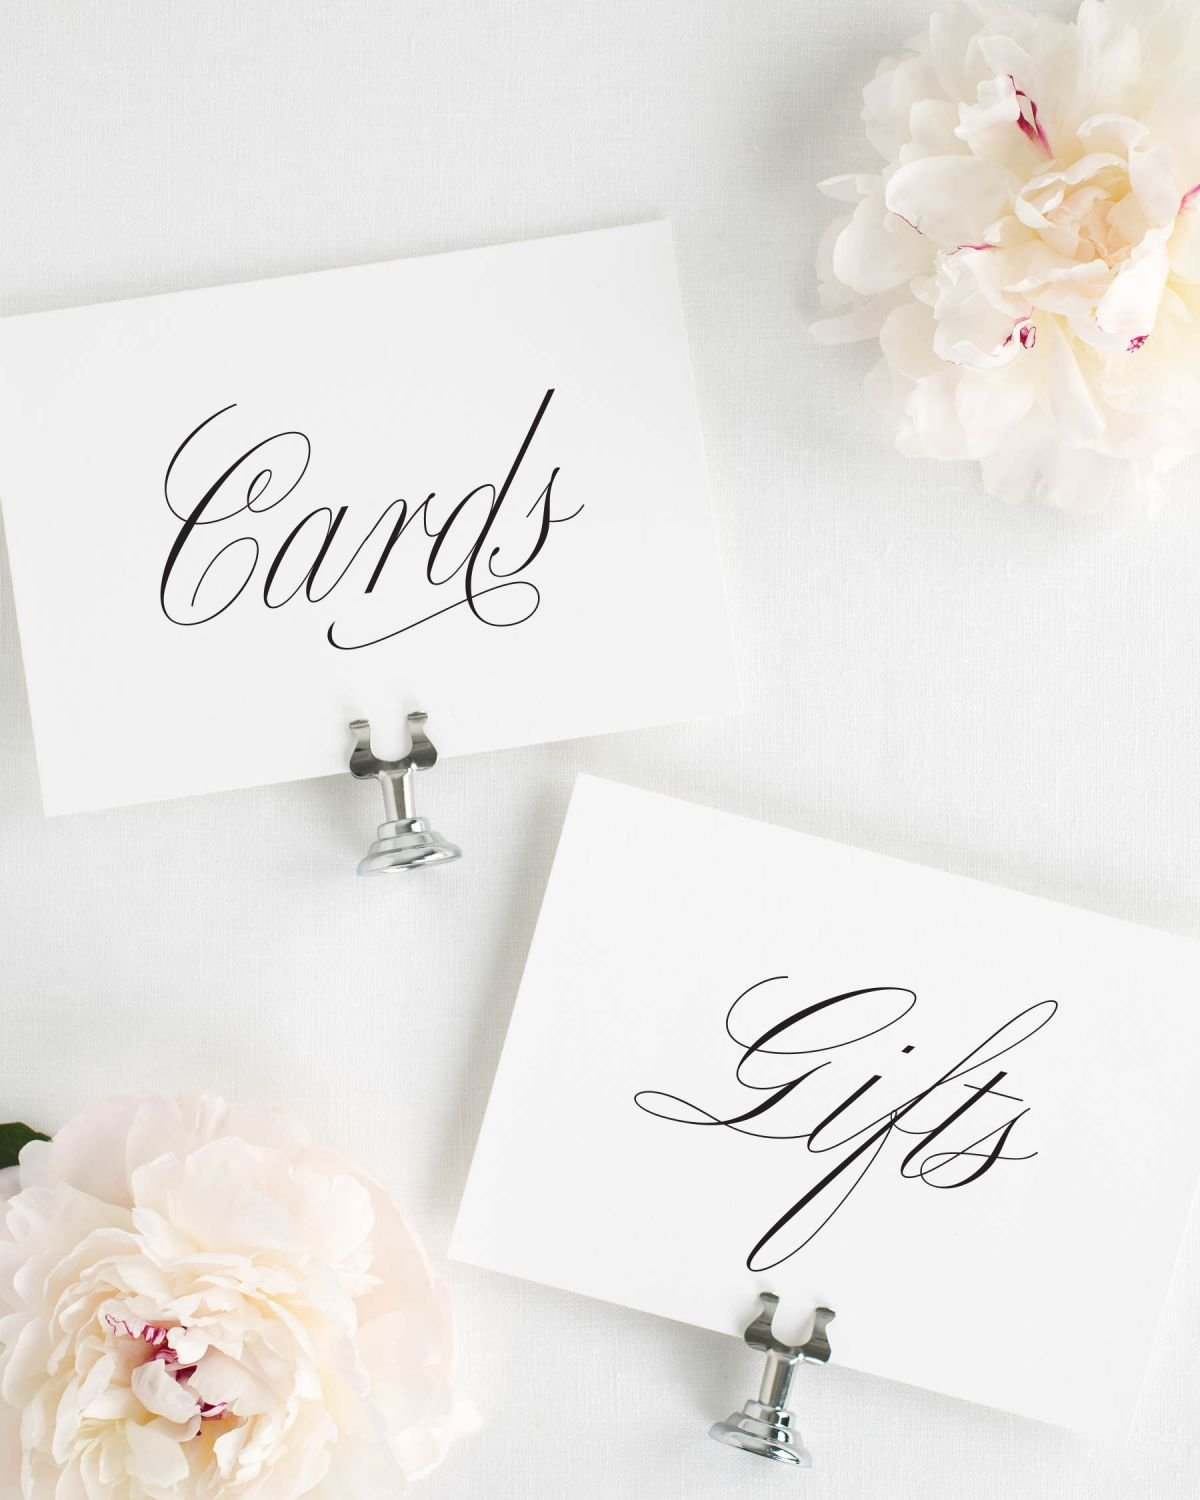 Cards and Gifts Wedding Signs in Script